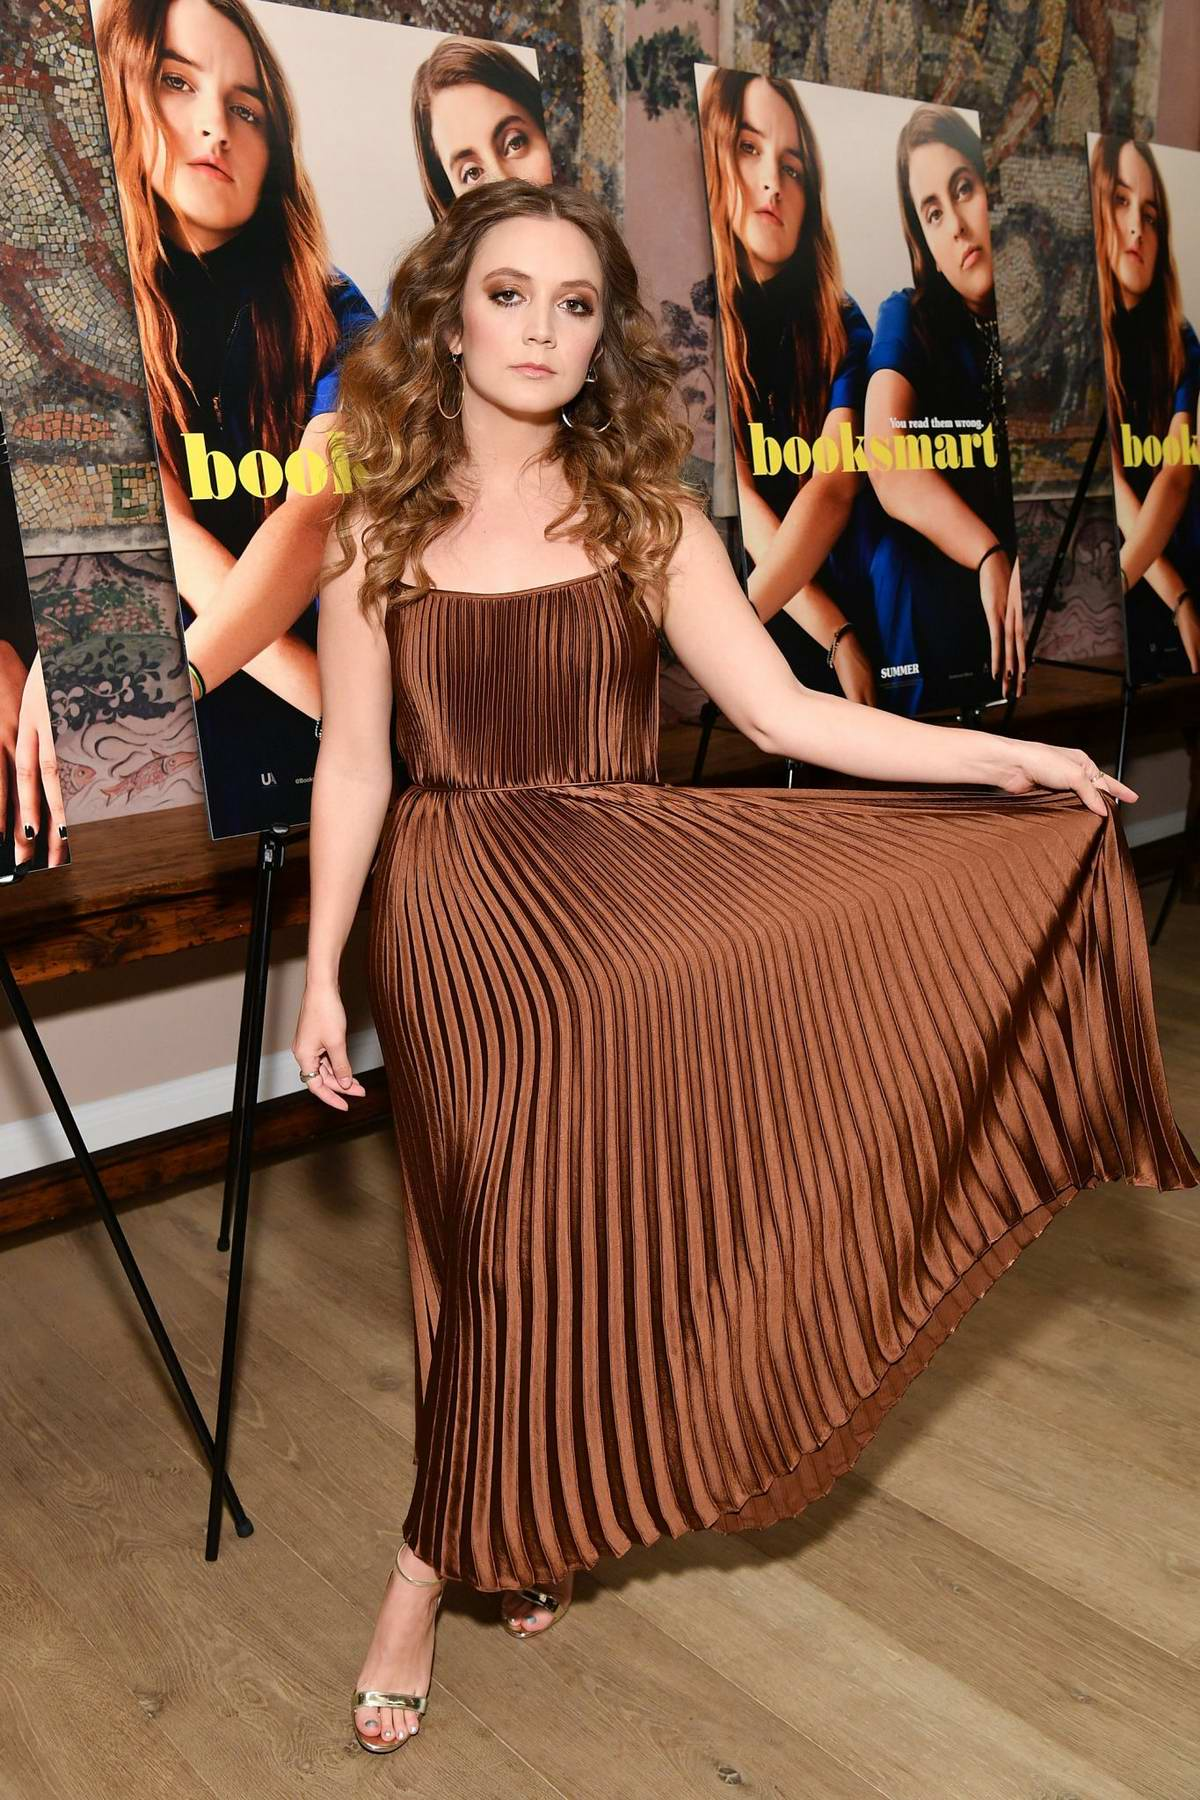 Billie Lourd attends the special screening of 'Booksmart' in New York City